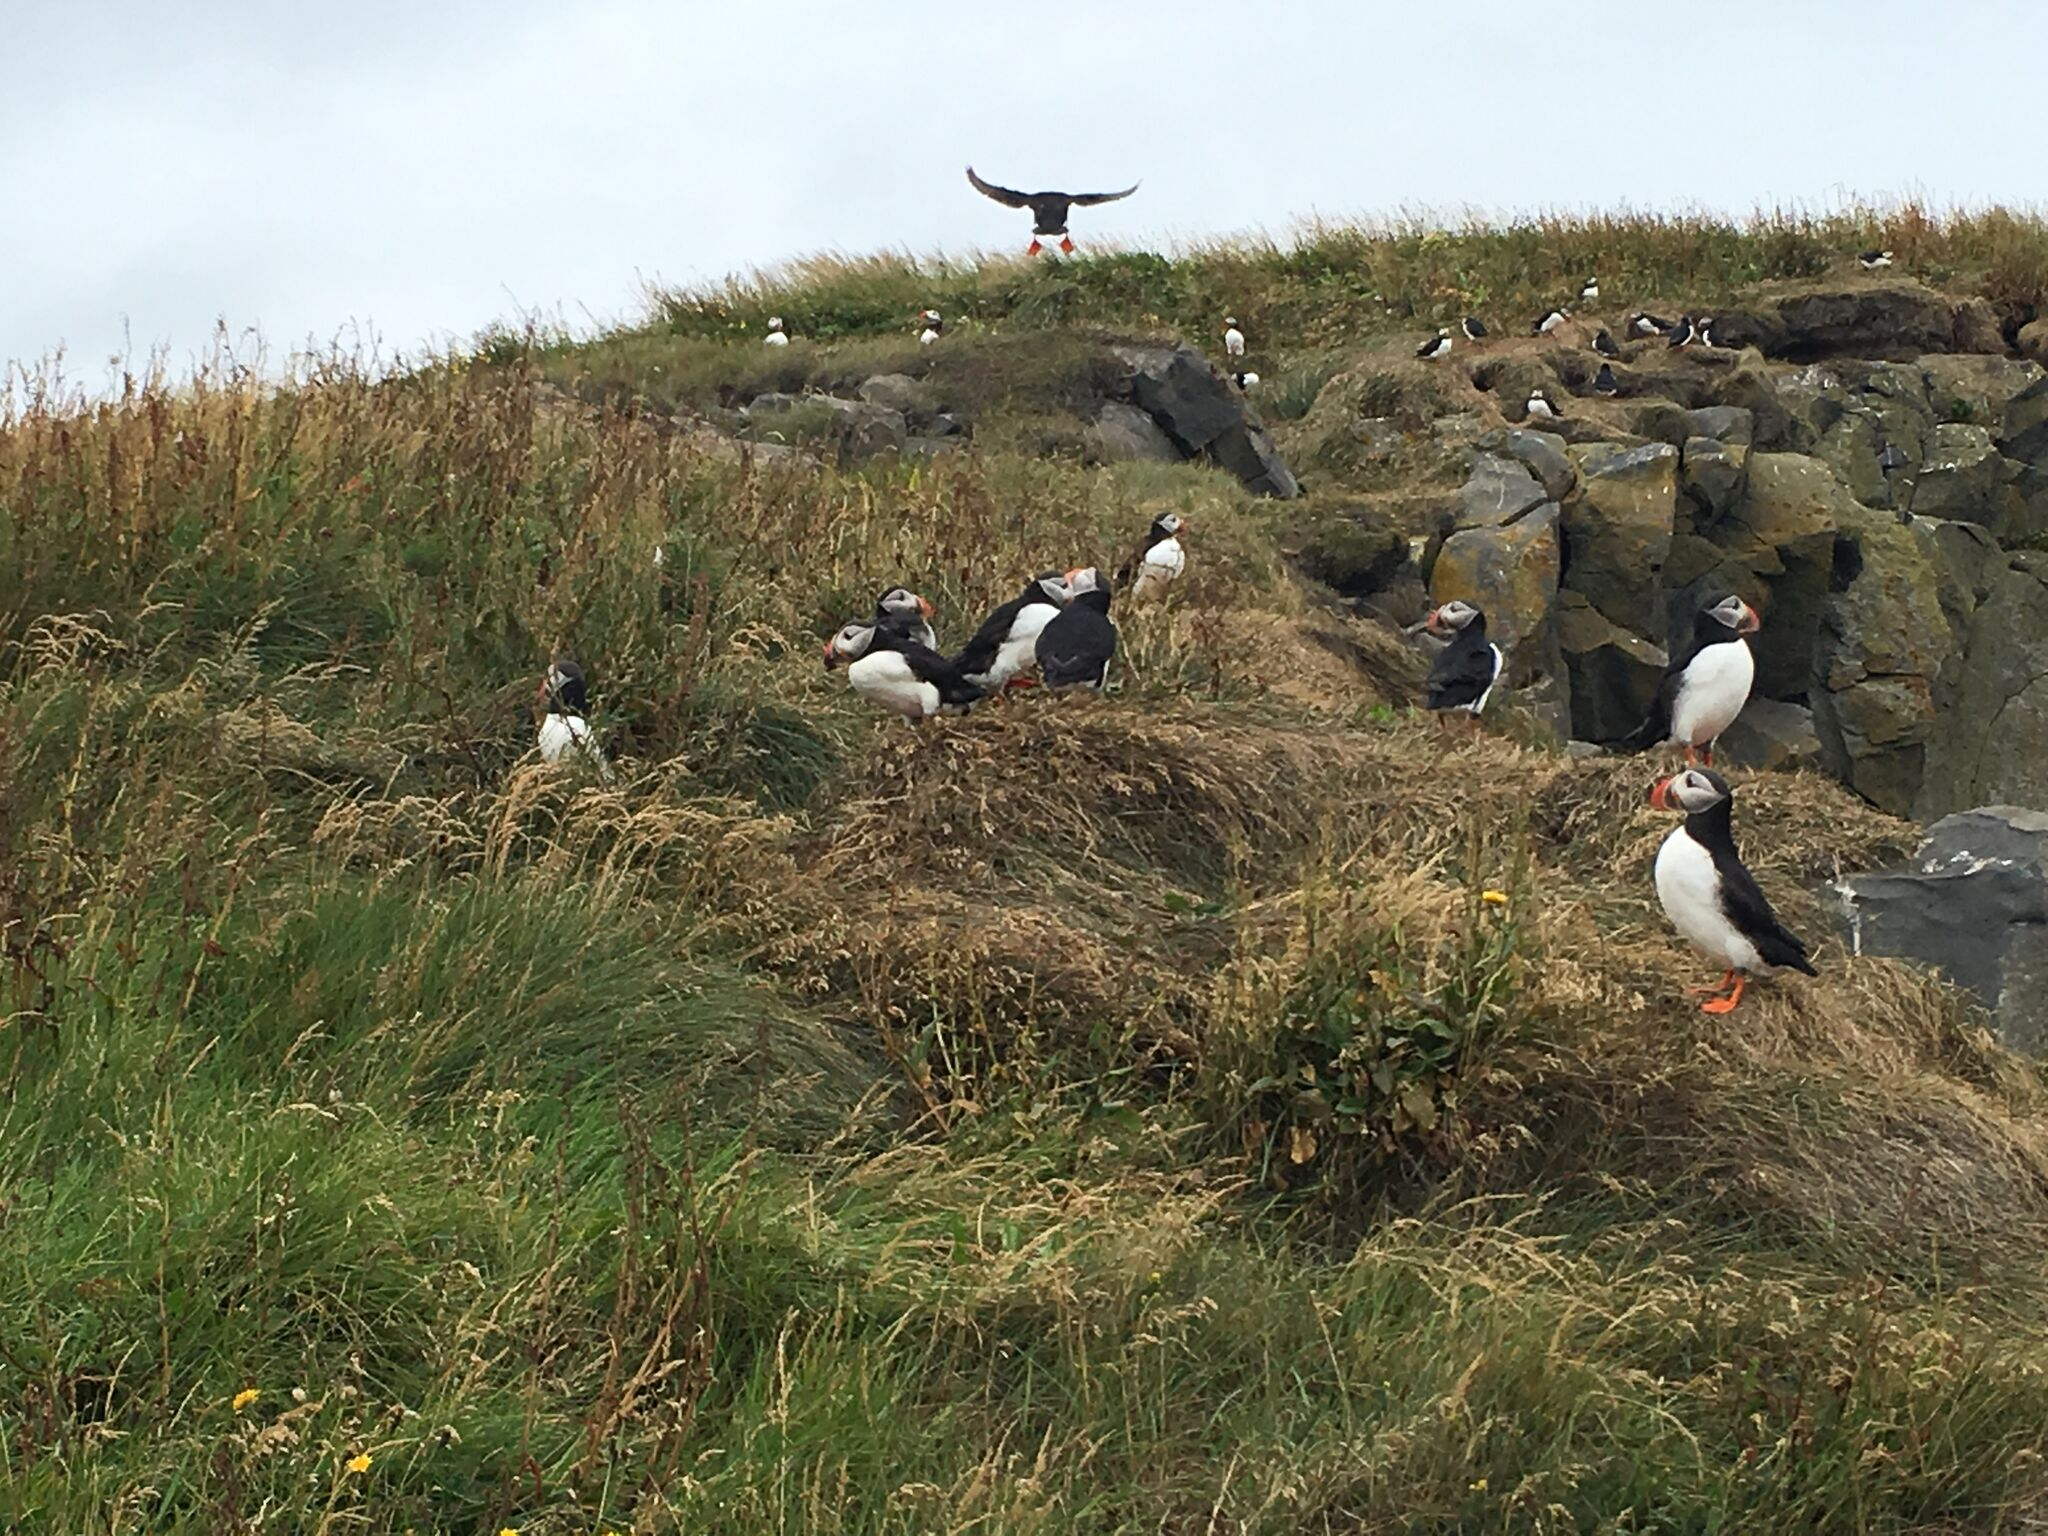 Objects in photo are smaller than they appear. Puffins are cutest feathered creatures you'll ever encounter.